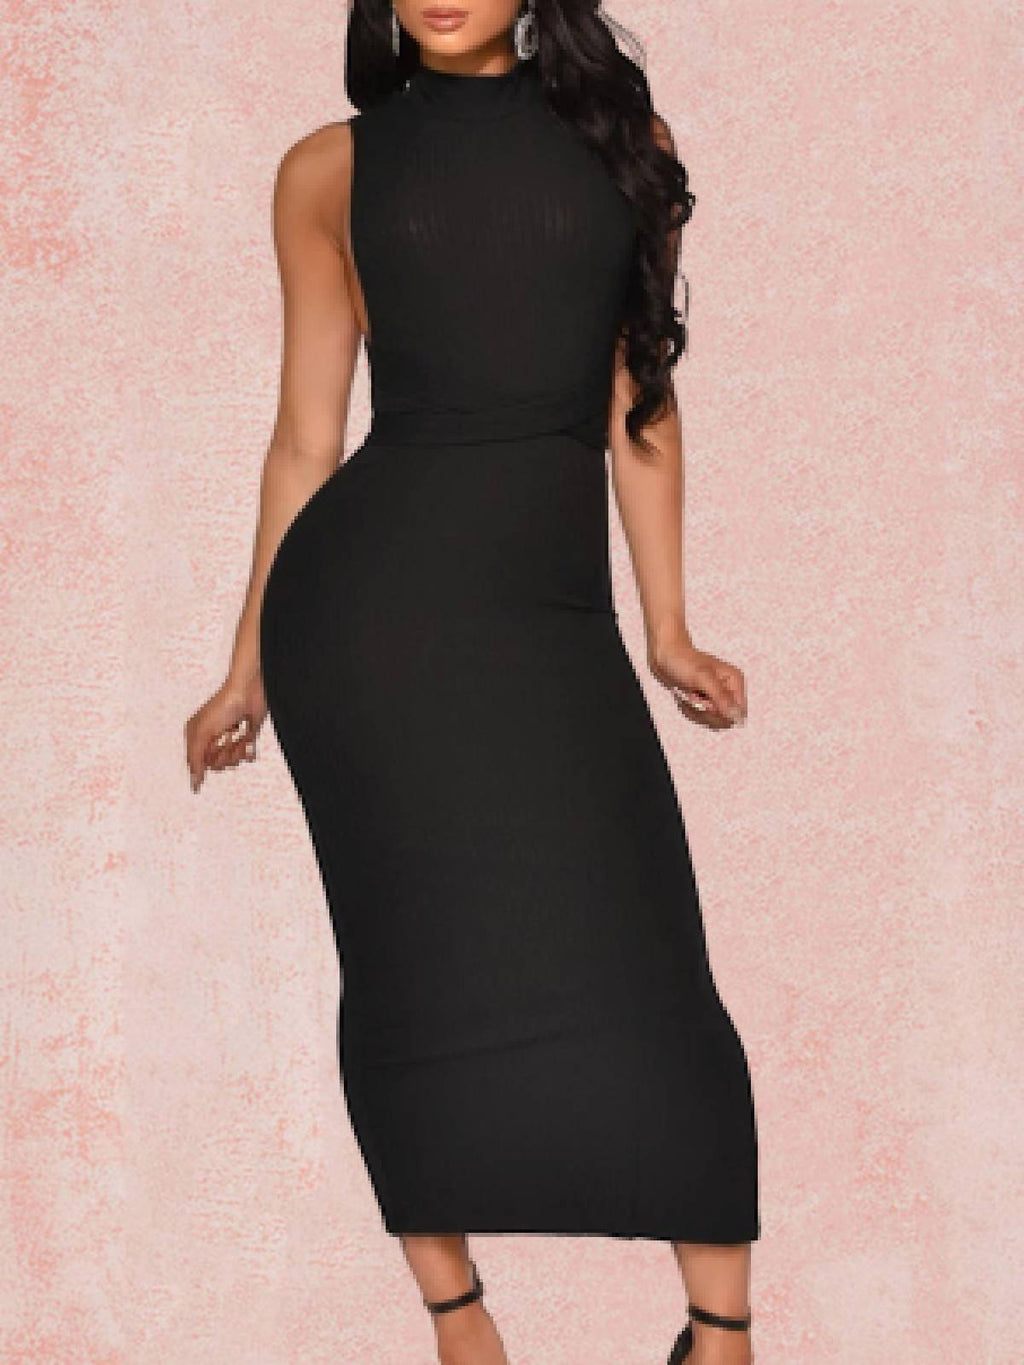 Black Solid Halter Sheath Cold Shoulder Dresses